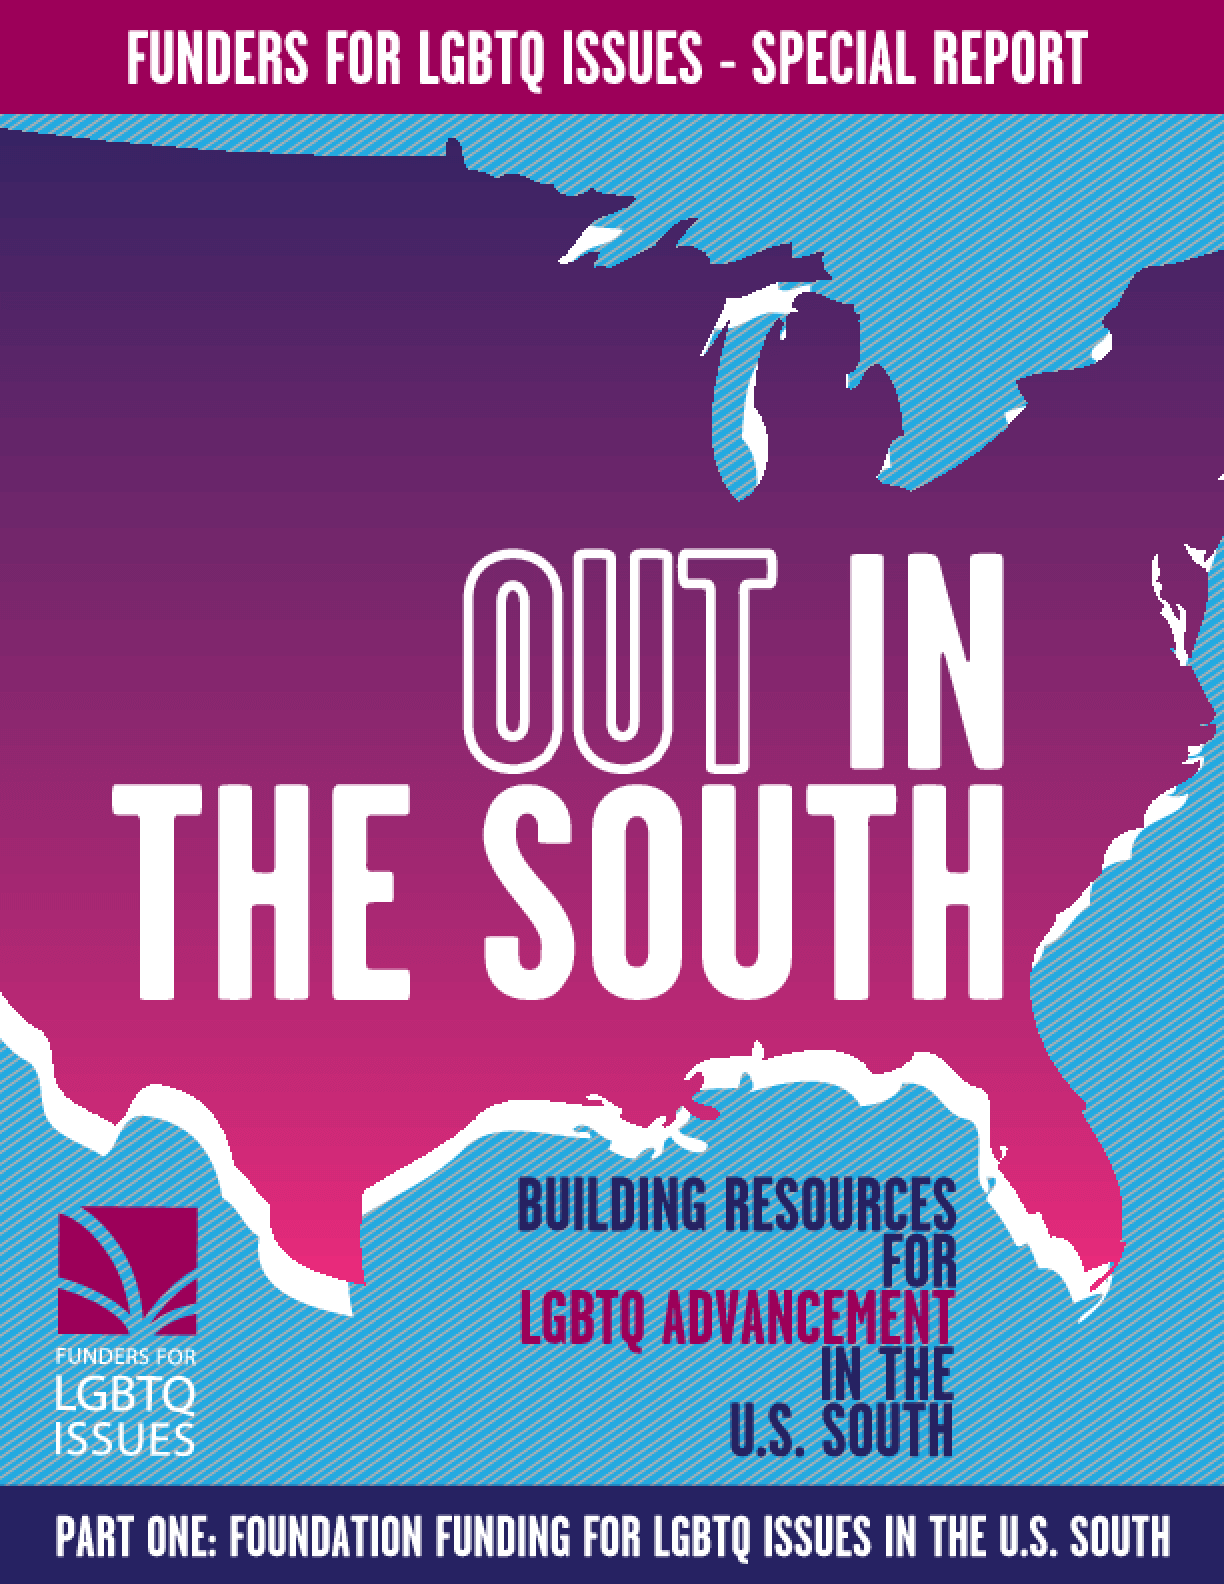 Out in the South: Building Resources for LGBTQ Advancement in the U.S. South: Part 1 - Foundation Funding for LGBTQ Issues in the U.S. South